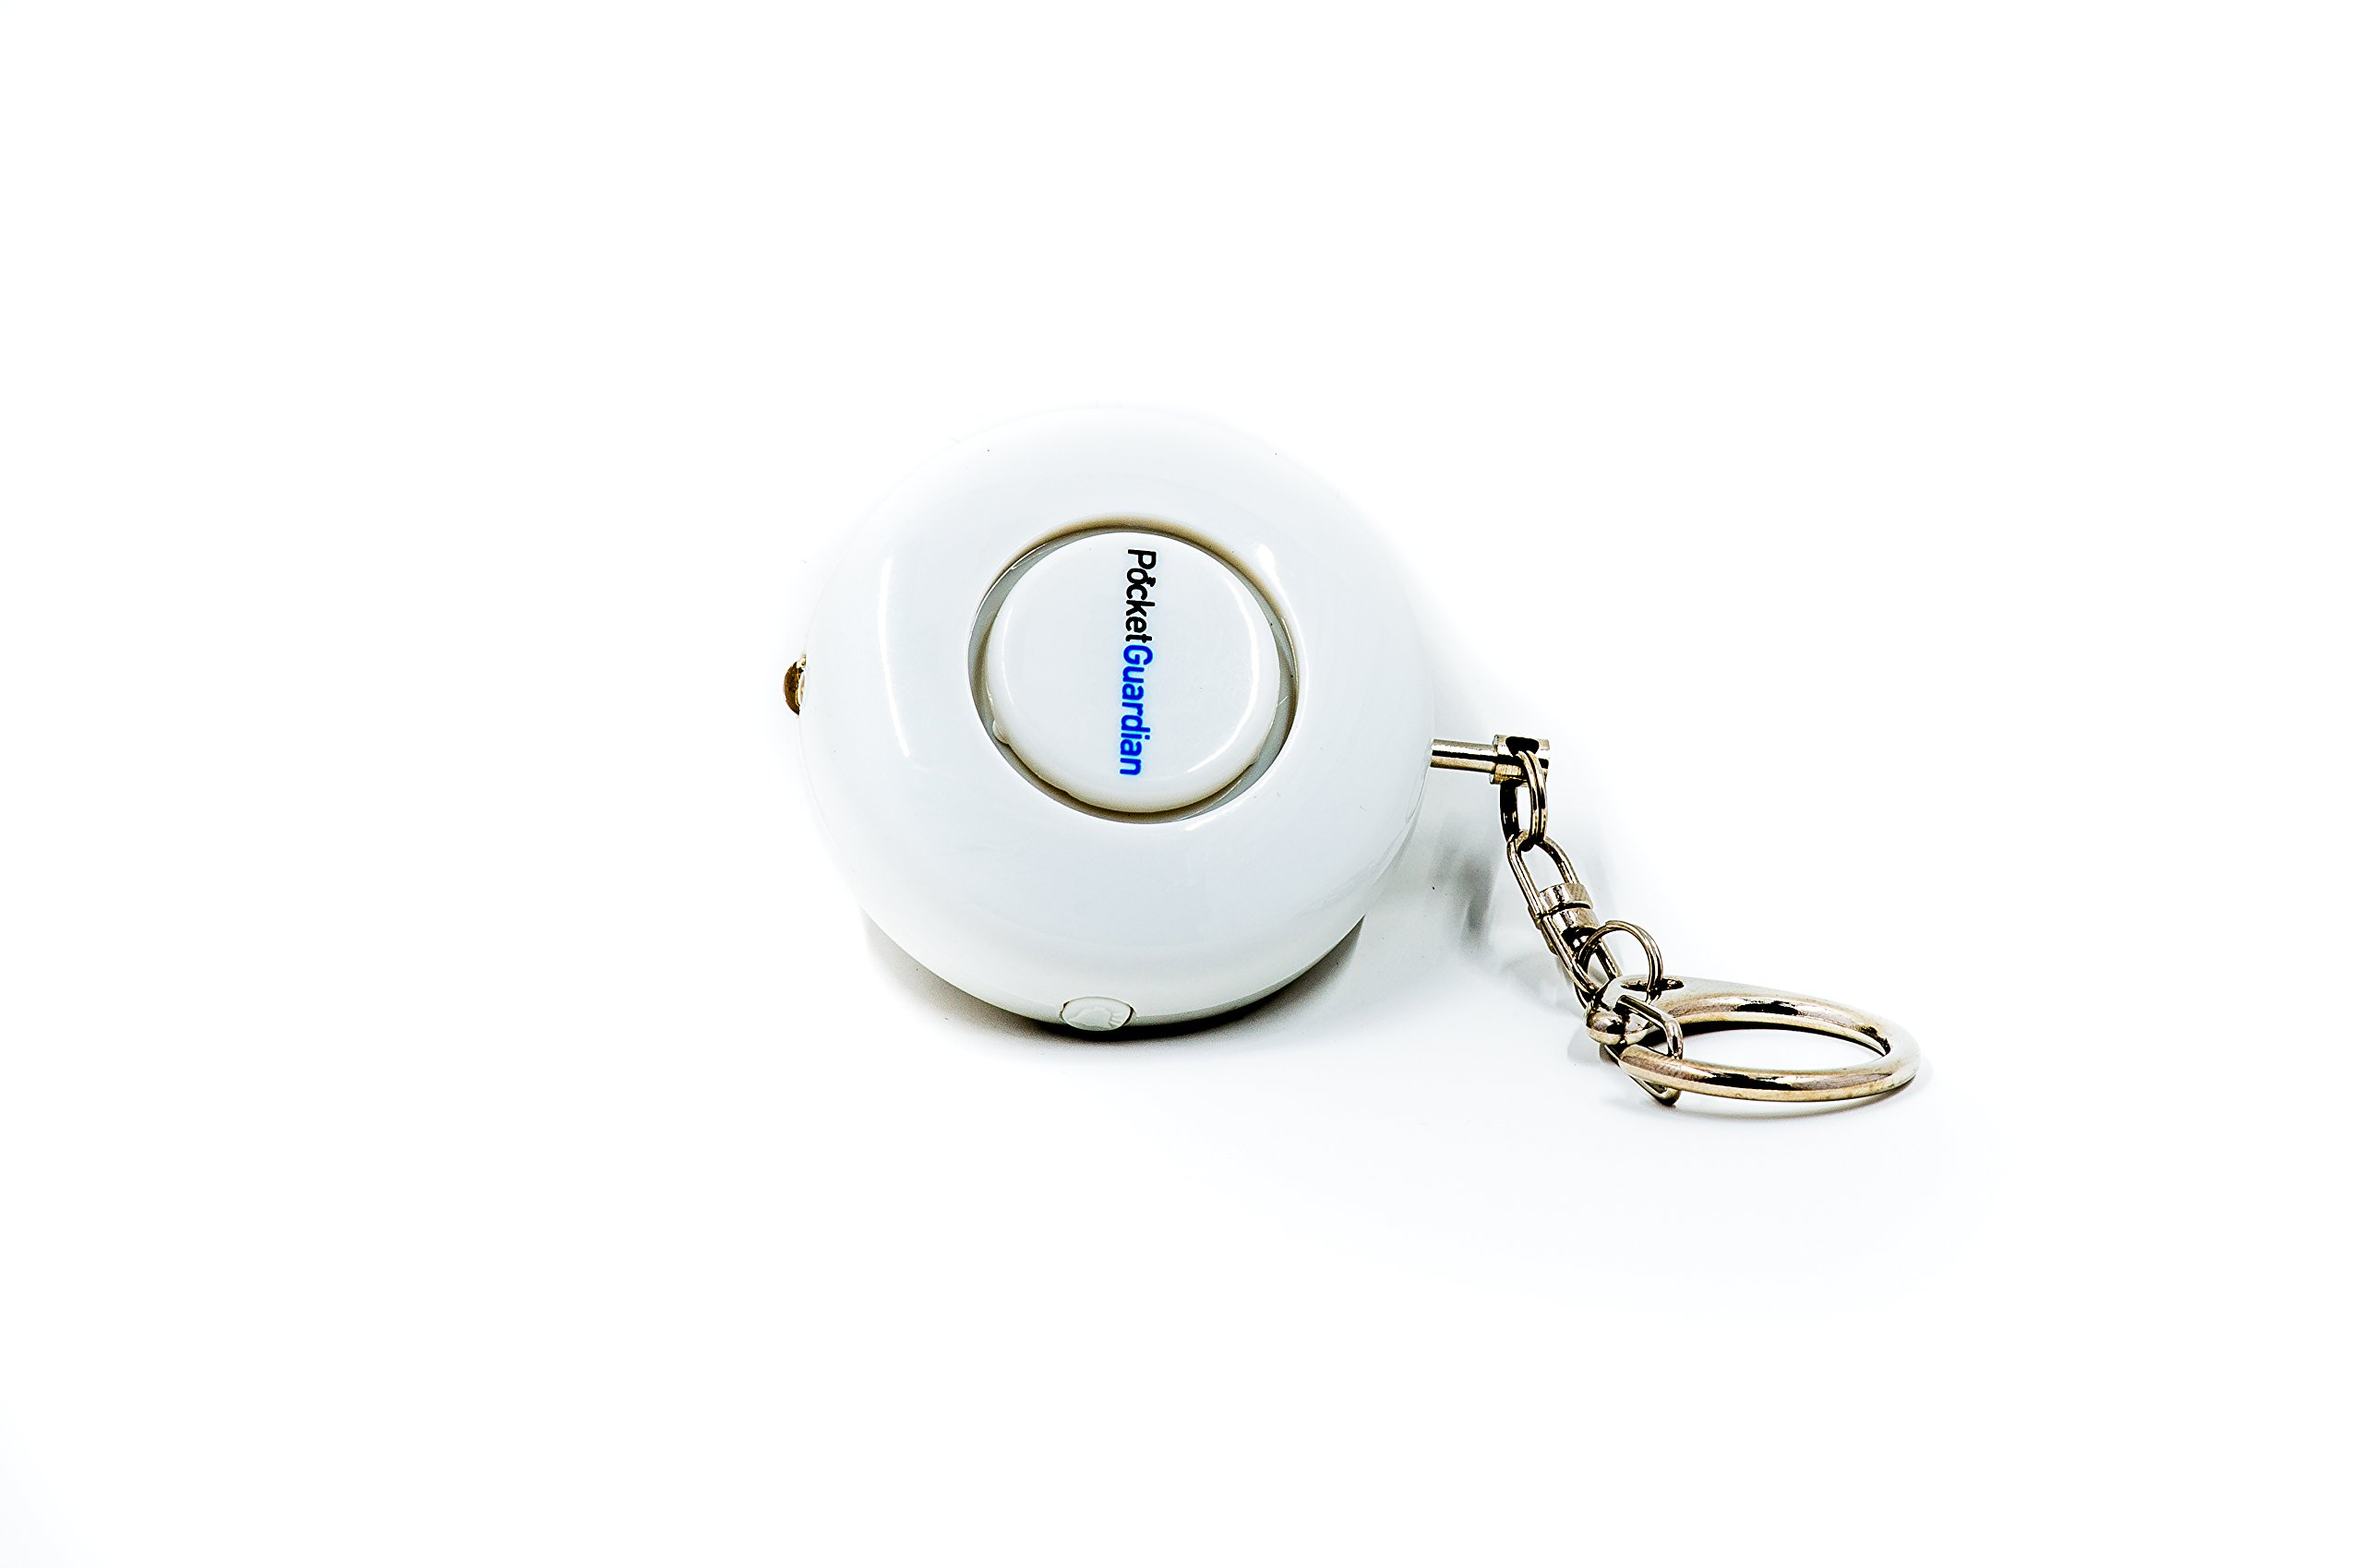 Pocket Guardian Personal Alarm Rape Whistle Attack Prevention Device with Flashlight (White) by Z9 Brands (Image #2)